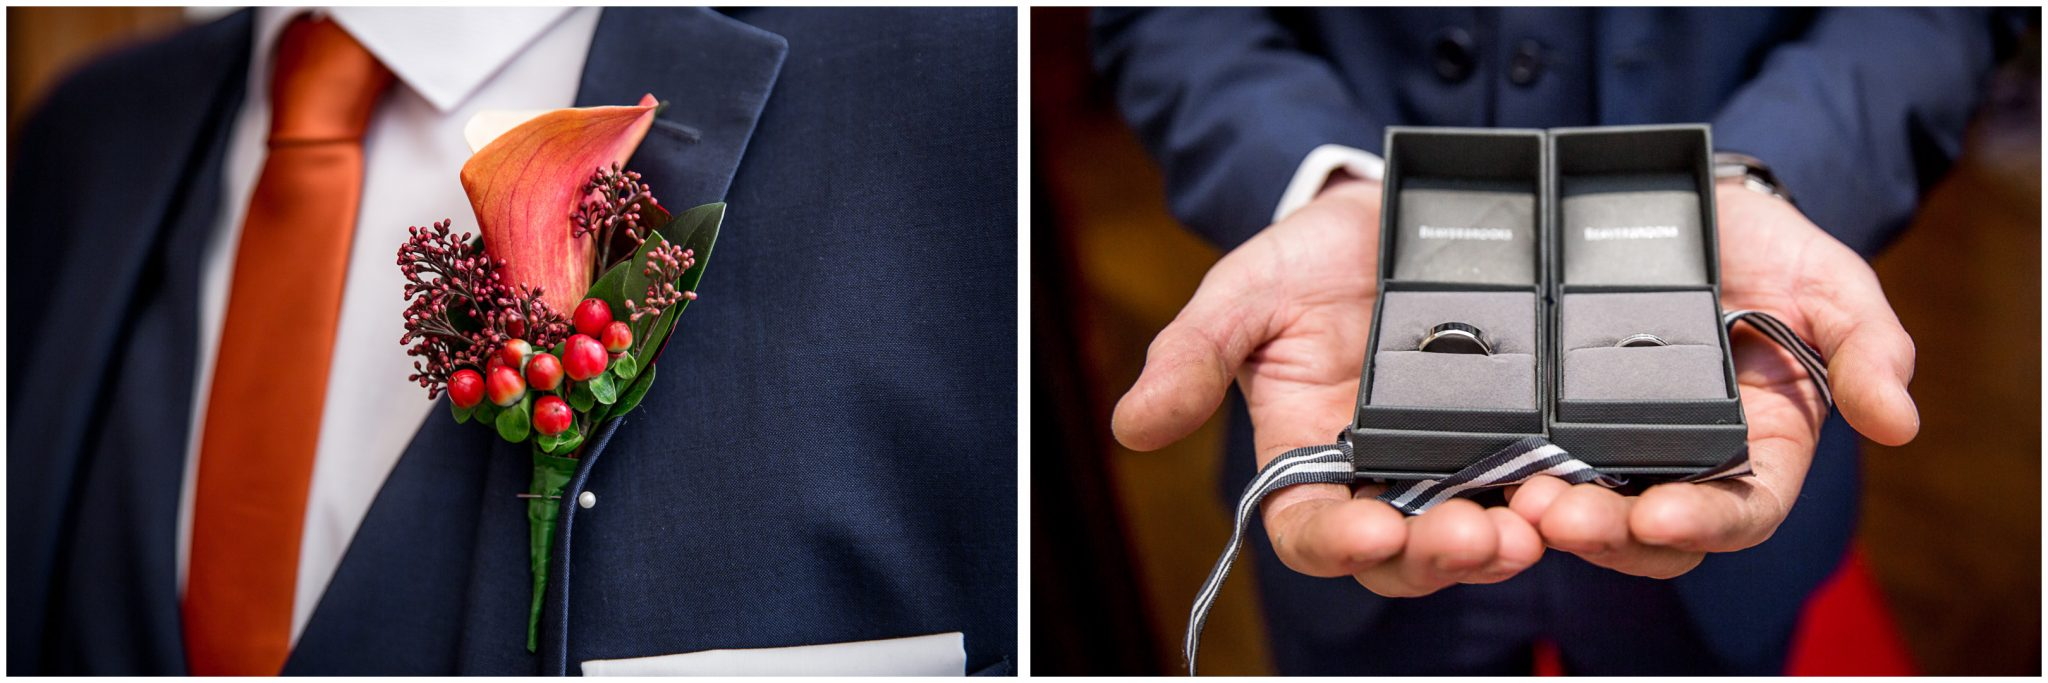 Audleys Wood wedding photograhy rings and buttonhole